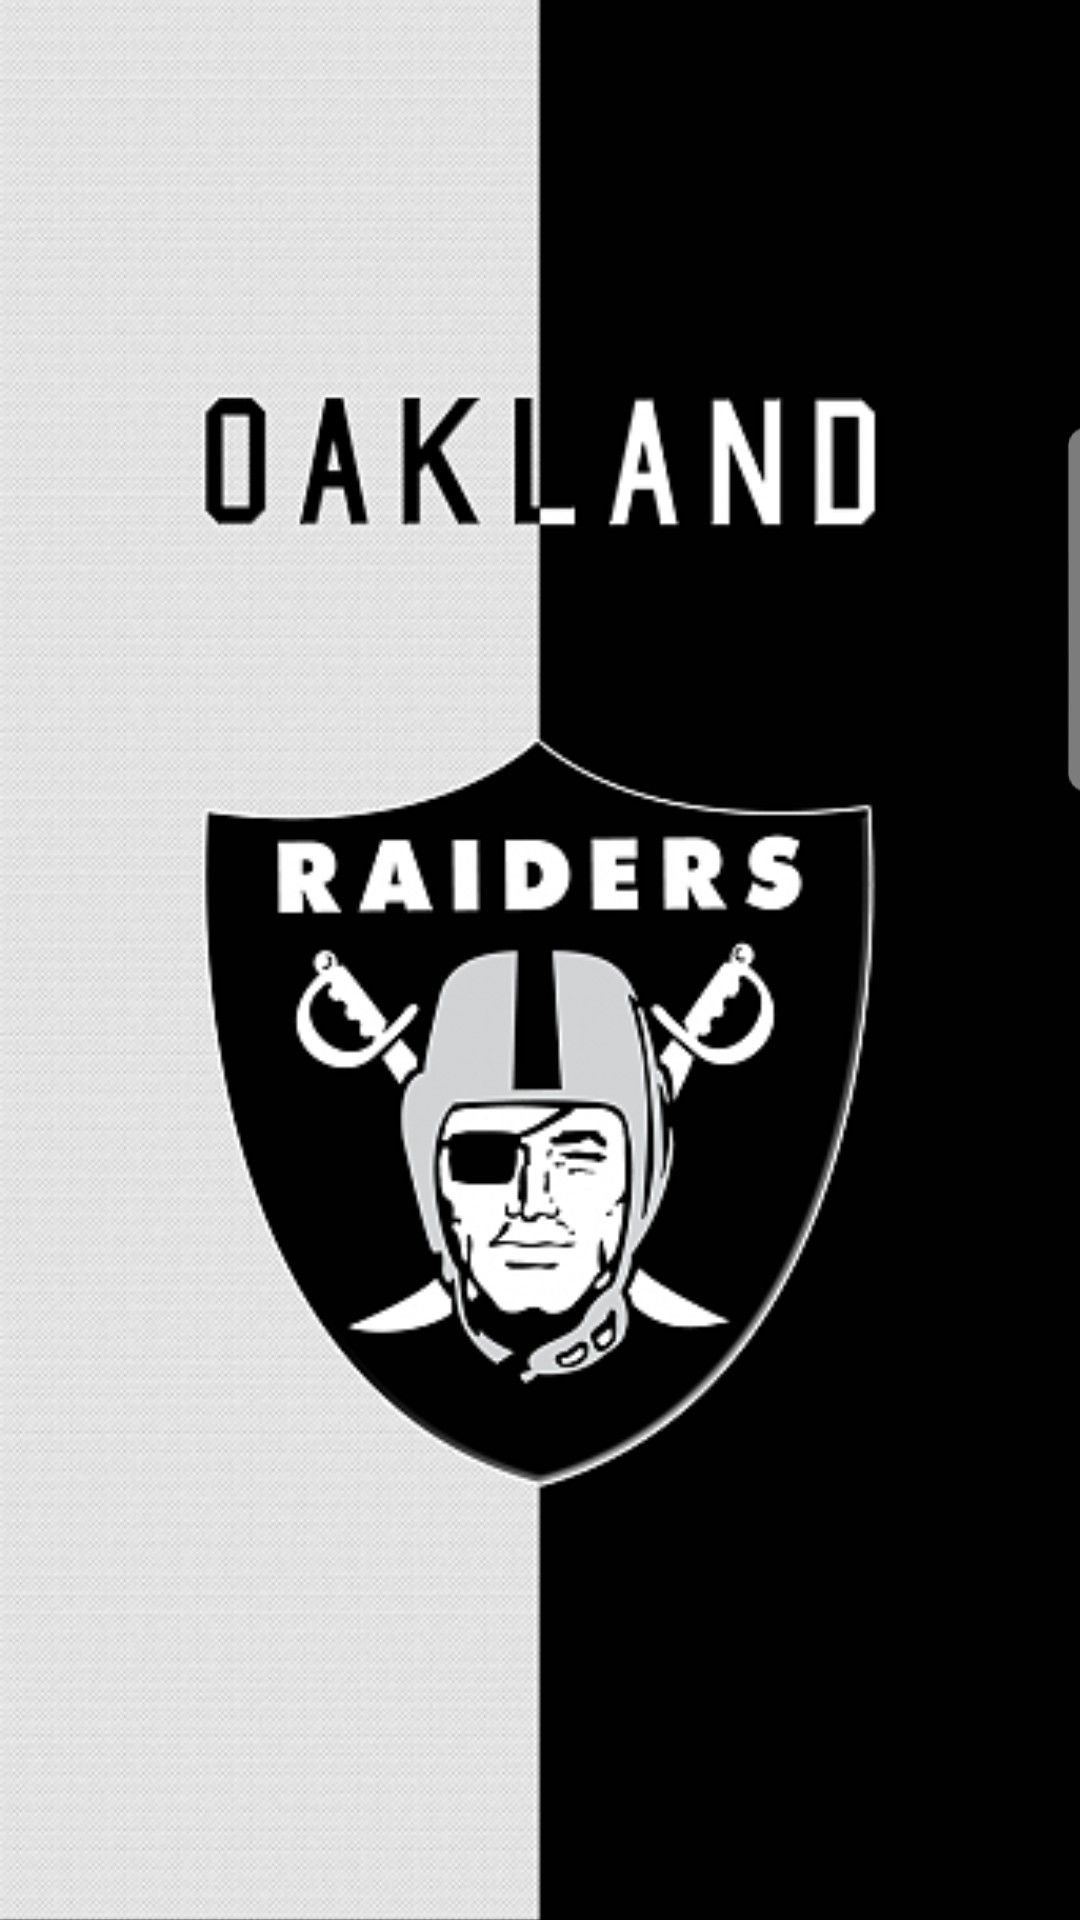 Pin By Archie Douglas On Whipz Raiders Wallpaper Raiders Oakland Raiders Fans